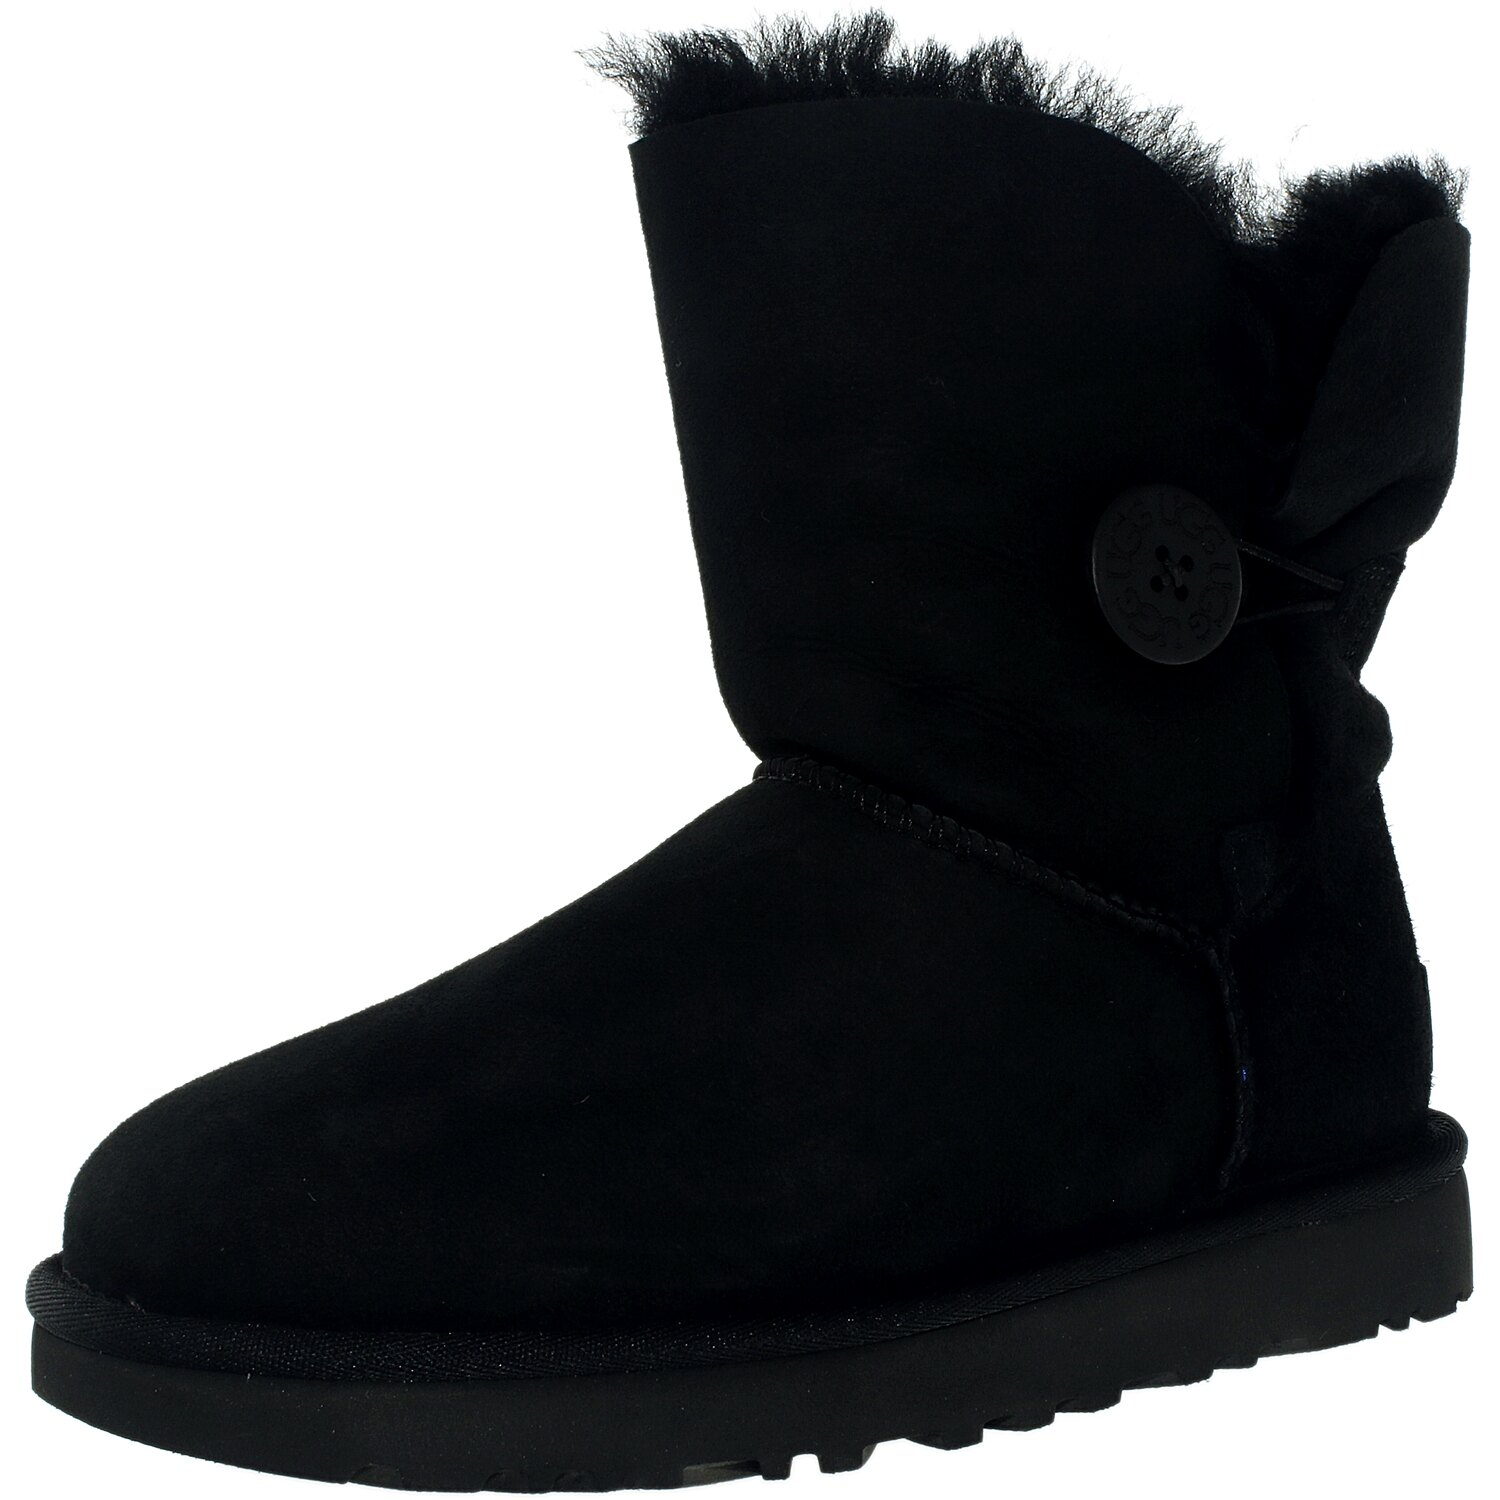 Ugg Women's Bailey Button II High-Top Sheepskin Boot 0